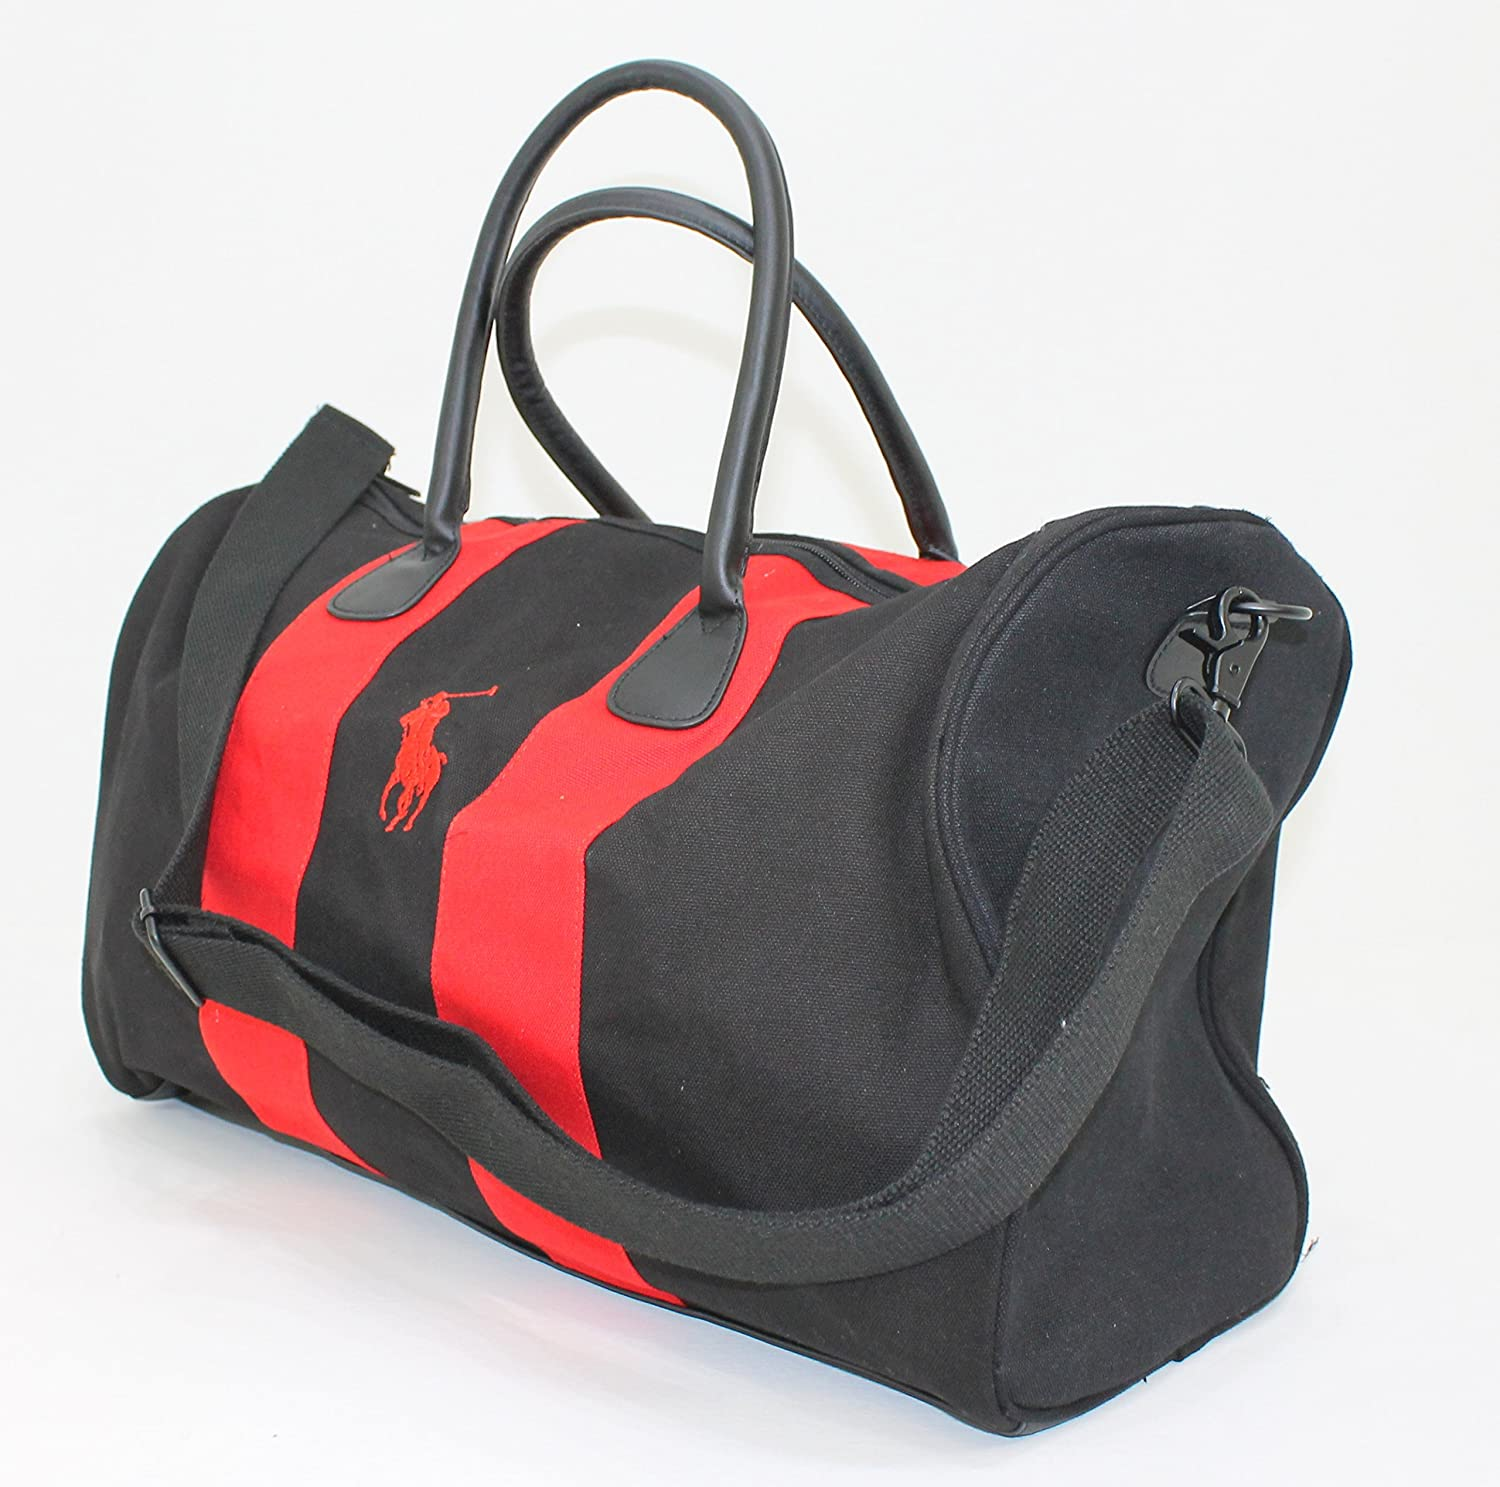 fb8eee85e34b The Fragrance Shop are offering a free Ralph. Product image. Calvin  RALPH  LAUREN FRAGRANCES POLO TRAVEL BAG GYM SPORTS BAG WITH RED DETAIL NEW new  style ...